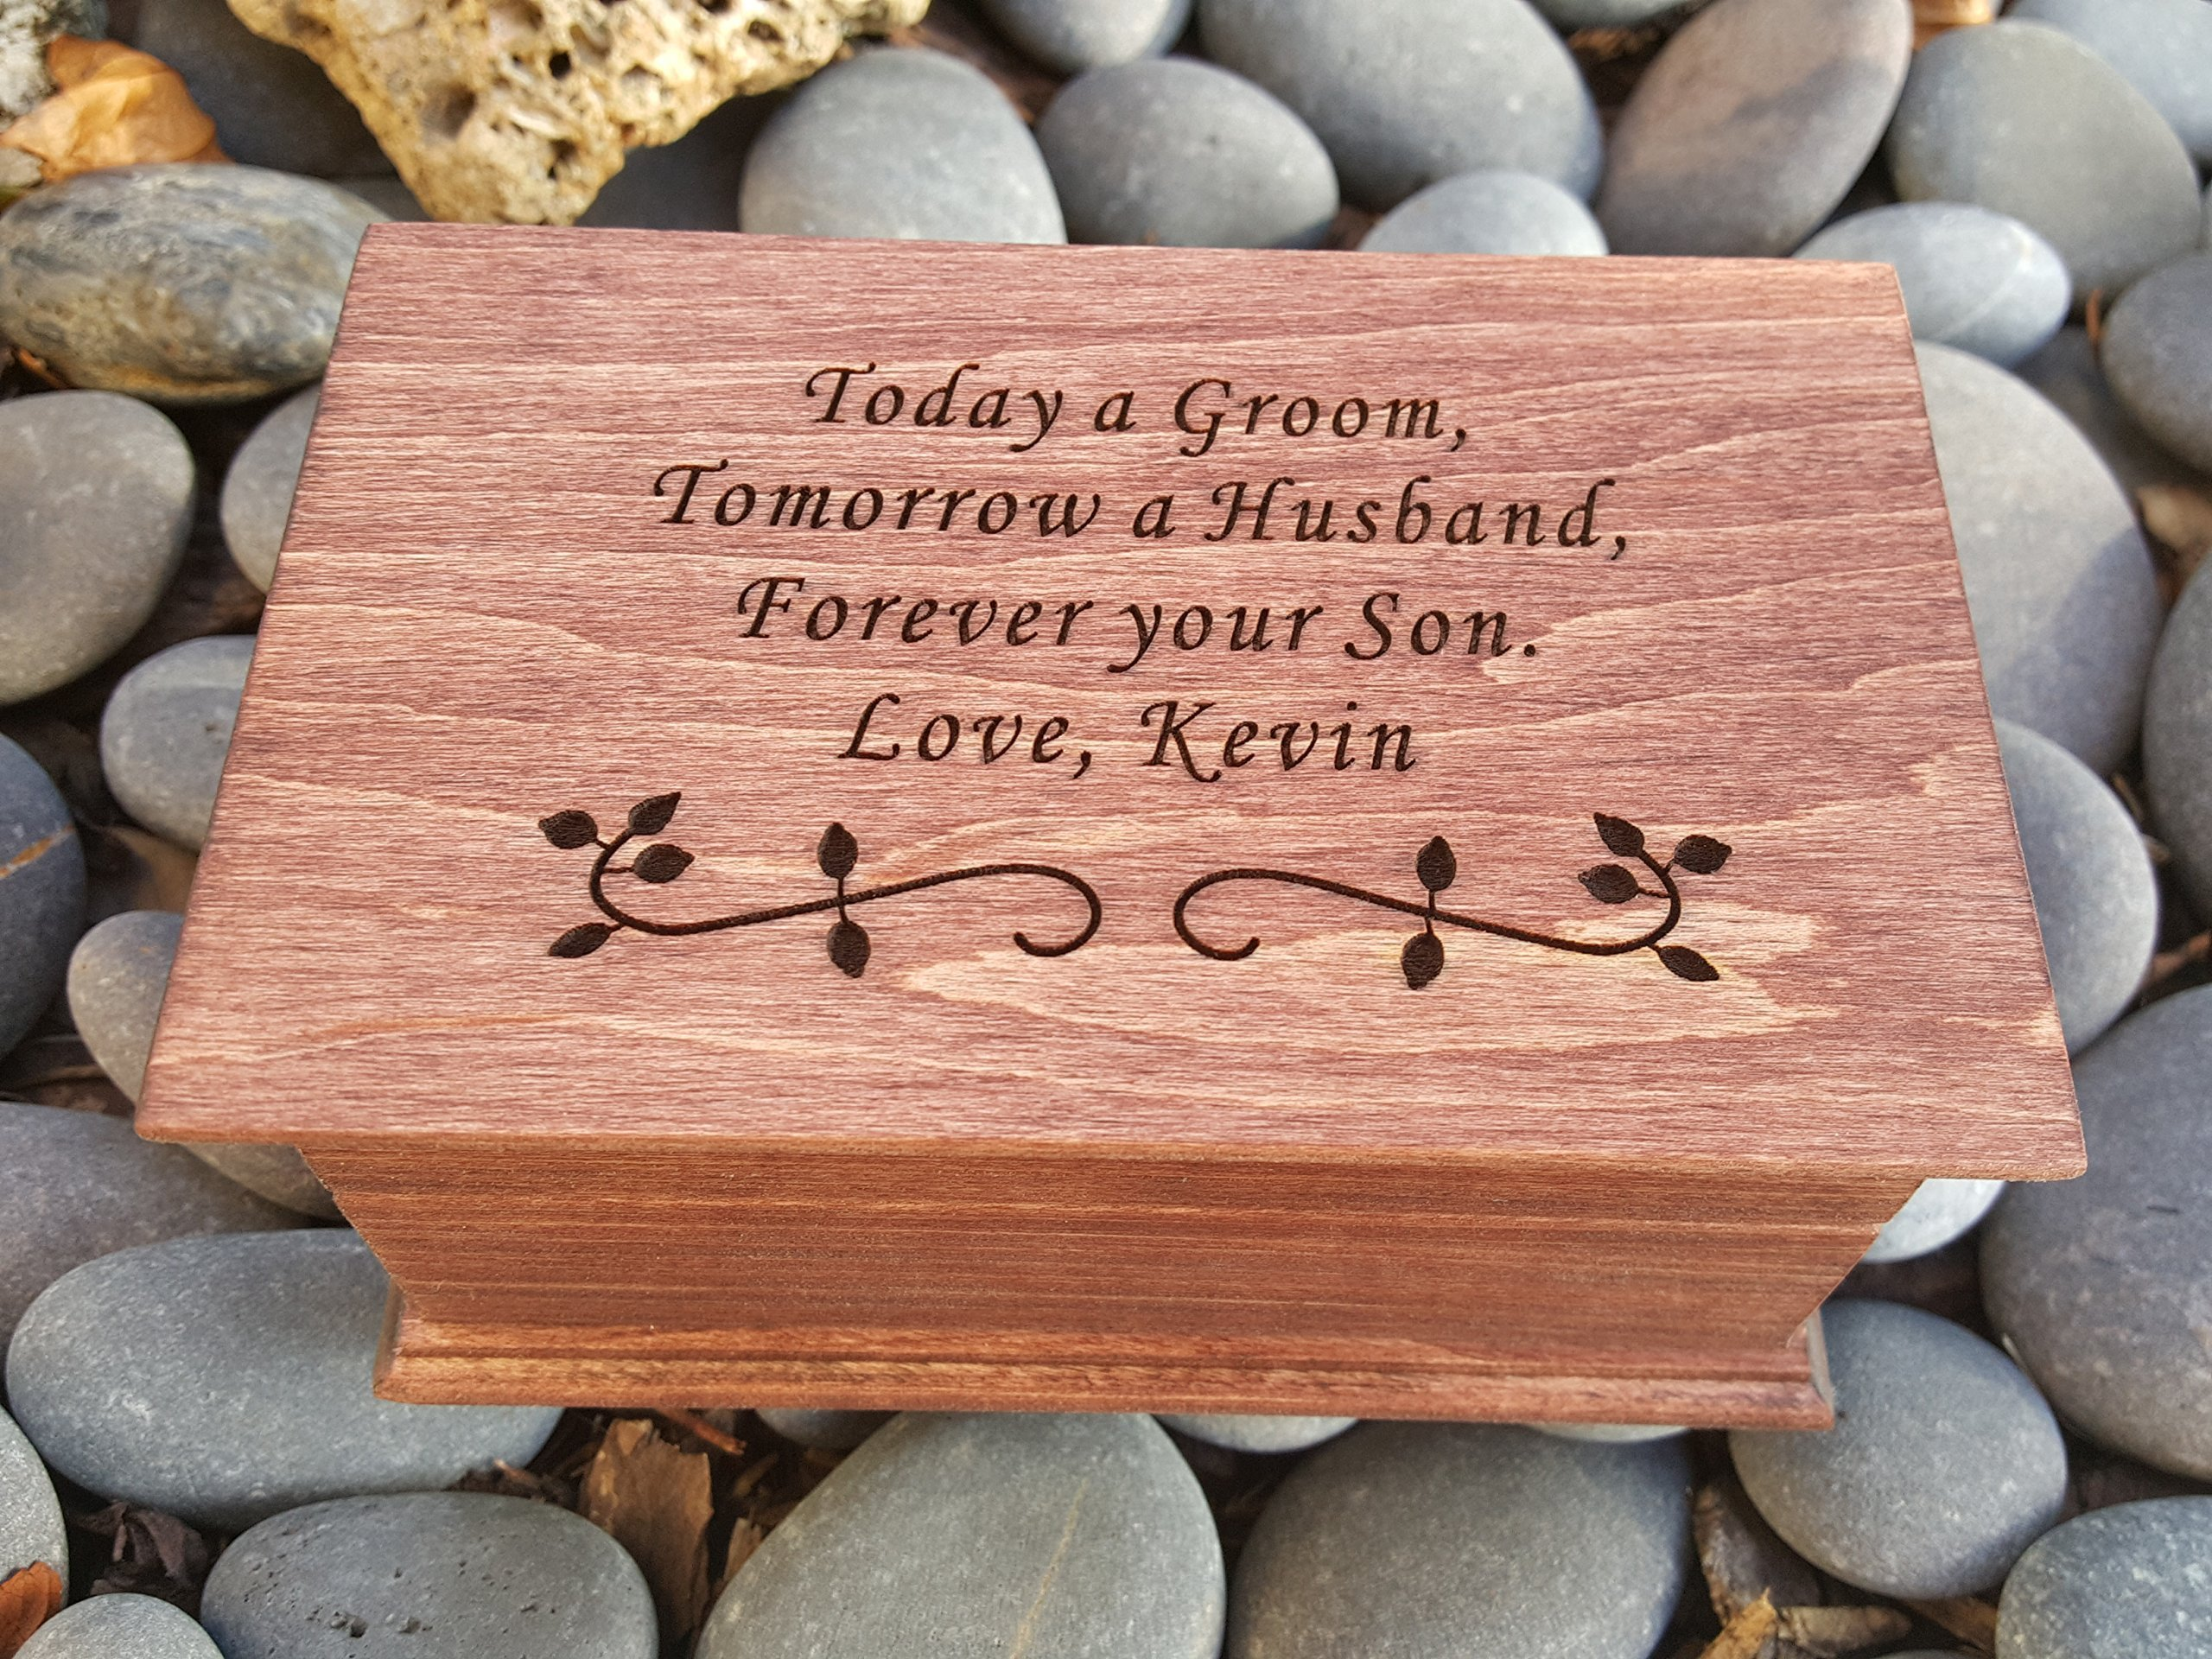 jewelry box, music box, custom made music box, handmade jewelry box, Today a Groom Tomorrow a Husband Forever your Son, wedding favor for mom, simplycoolgifts by Simplycoolgifts